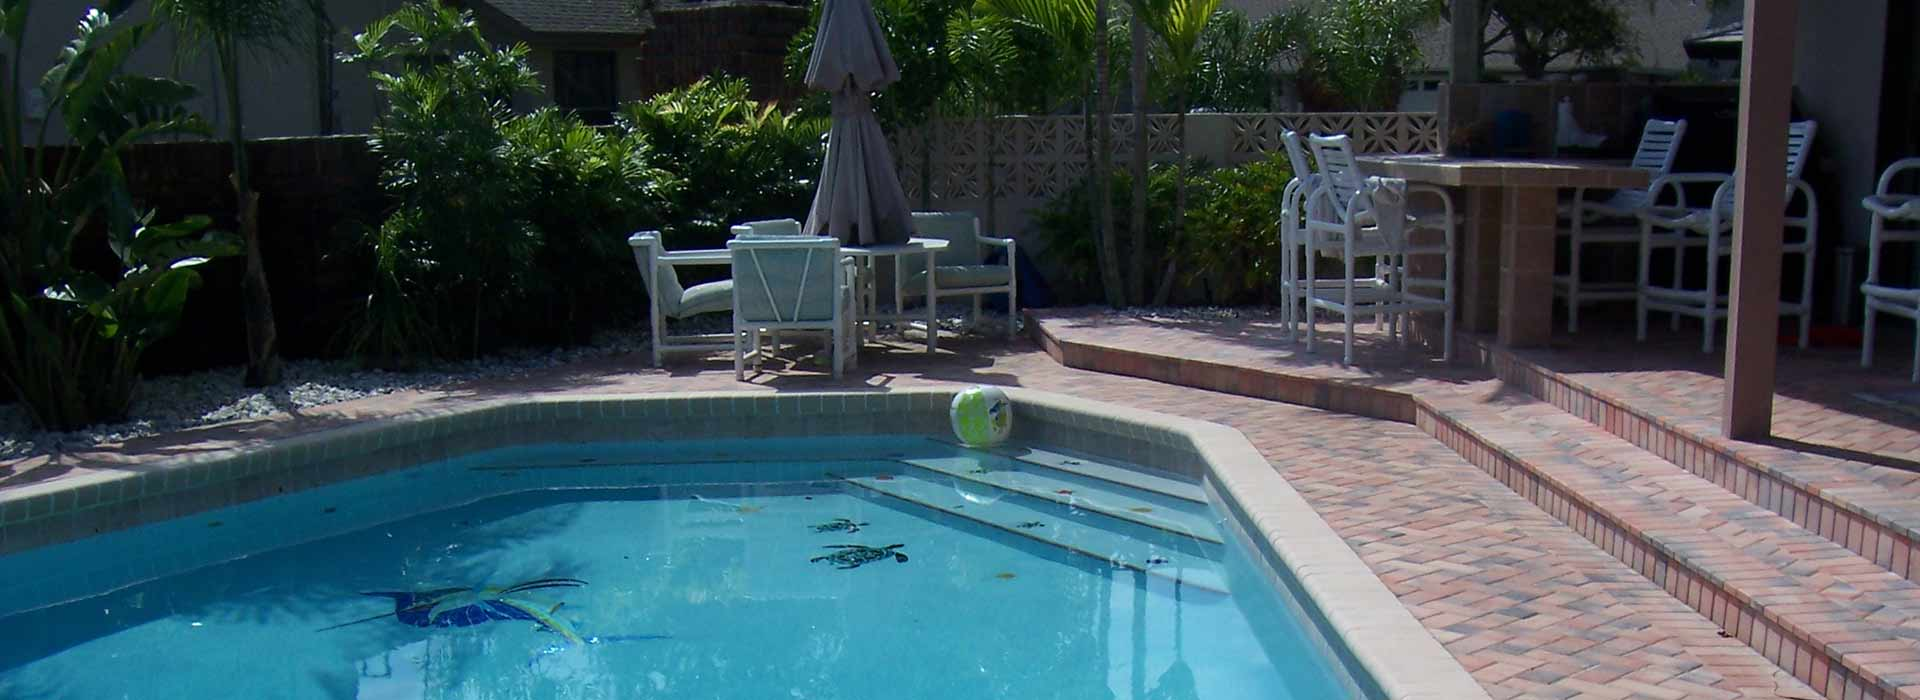 Swimming Pool Center Melbourne Fl Pool Professionals Melbourne Fl Palm Bay Fl Beaches Fl